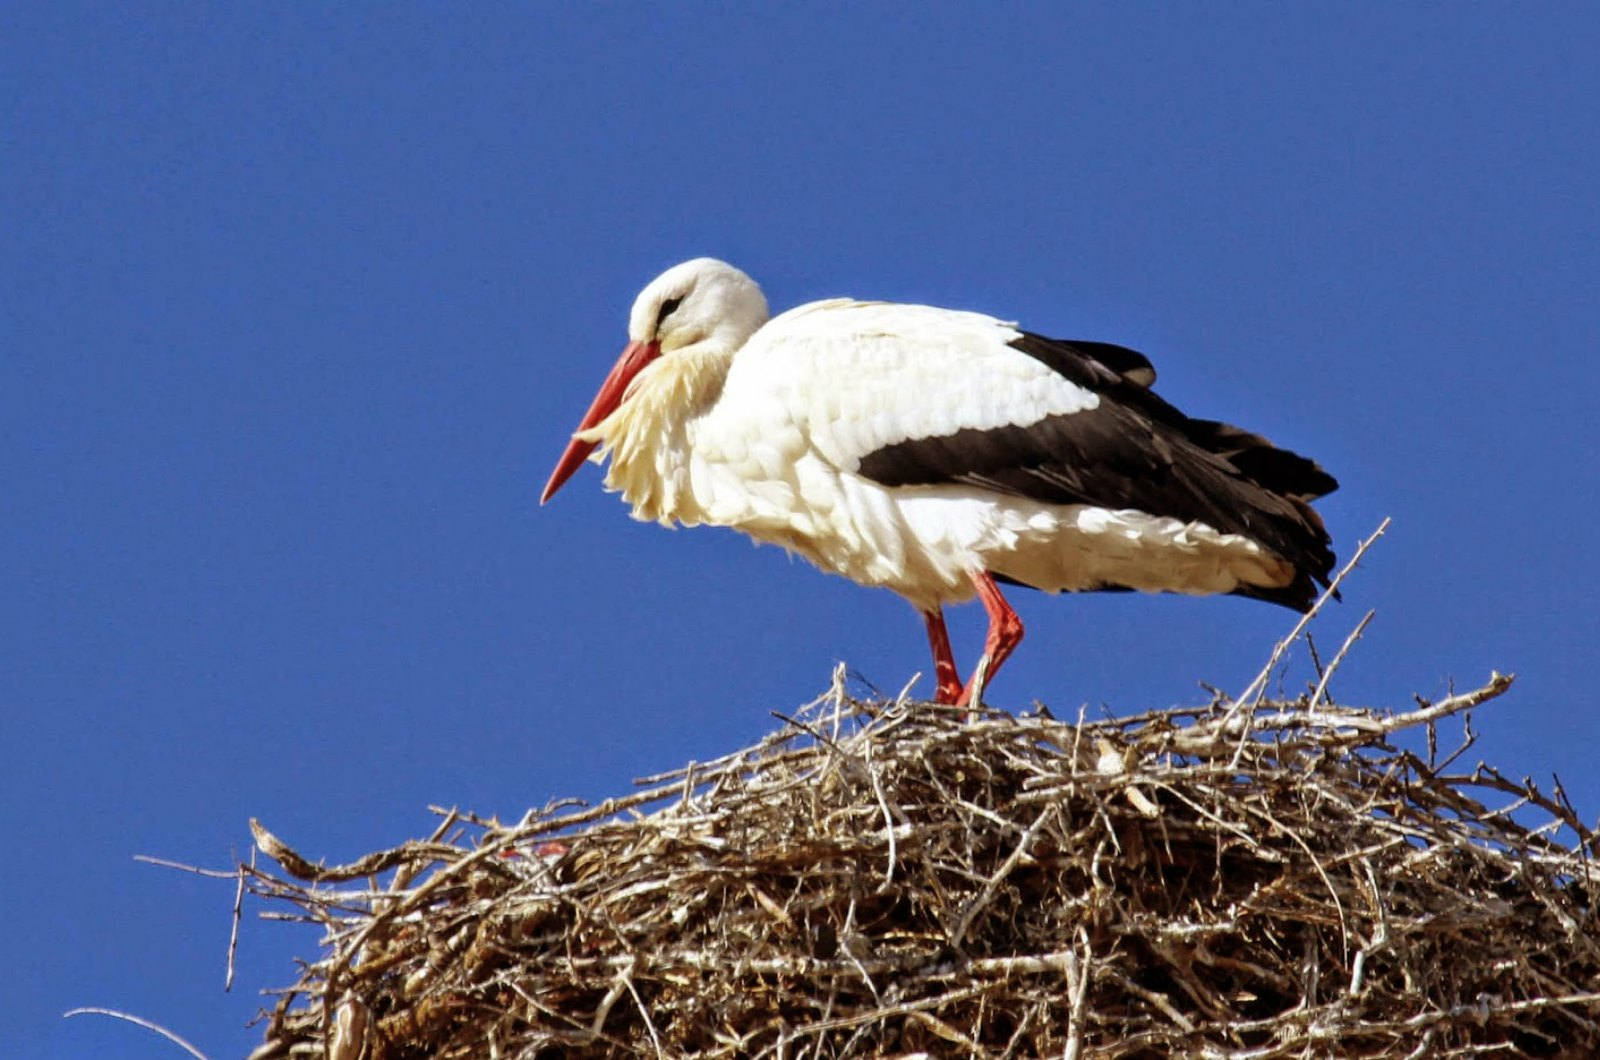 A white stork stands on the nest of rough twigs on a roof top on our Birds of Northern Spain trip in the Spanish Pyrenees